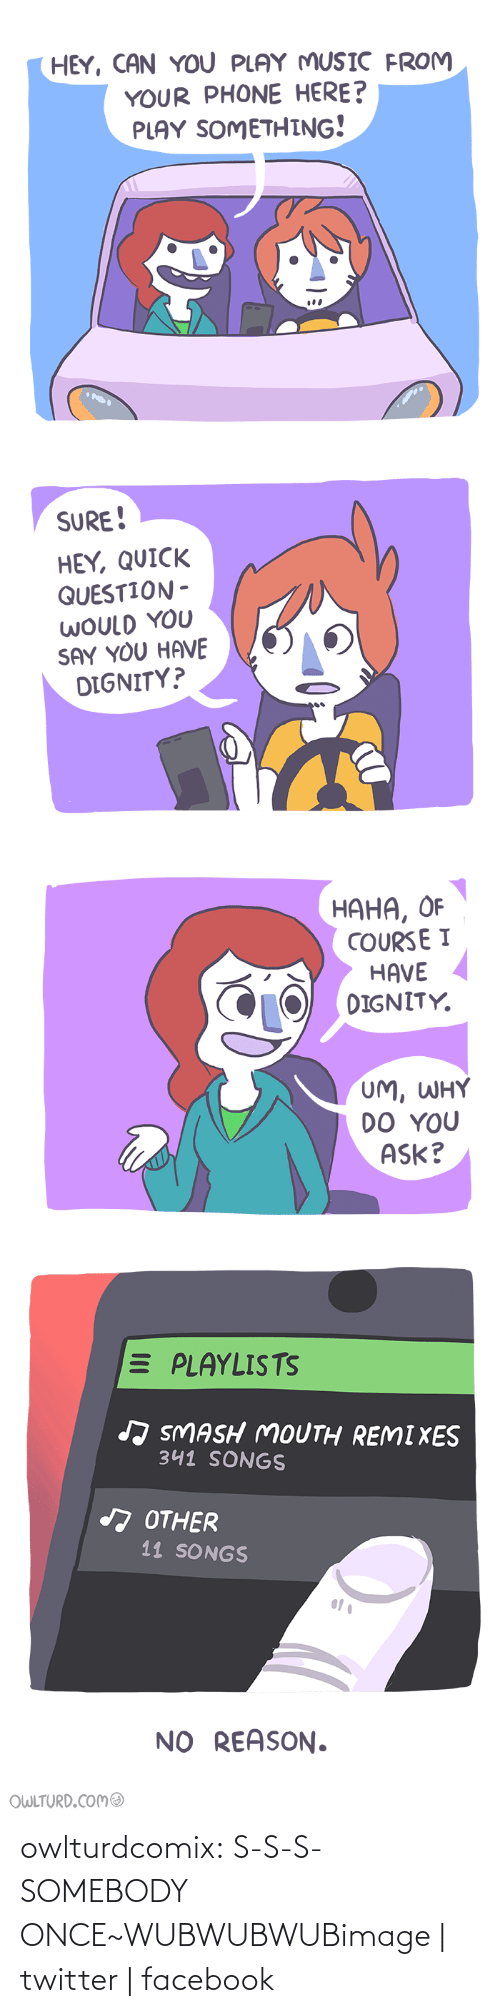 Shenanigansen: HEY, CAN YOU PLAY MUSIC FROM  YOUR PHONE HERE?  PLAY SOMETHING!  SURE!  HEY, QUICK  QUESTION -  WOULD YOU  SAY YOU HAVE  DIGNITY?   НАНА, ОF  COURSE I  HAVE  DIGNITY.  UM, WHY  DO YOU  ASK?   E PLAYLISTS  J SMASH MOUTH REMIXES  341 SONGS  A OTHER  11 SONGS  NO REASON.  OWLTURD.COMO owlturdcomix:  S-S-S-SOMEBODY ONCE~WUBWUBWUBimage   twitter   facebook